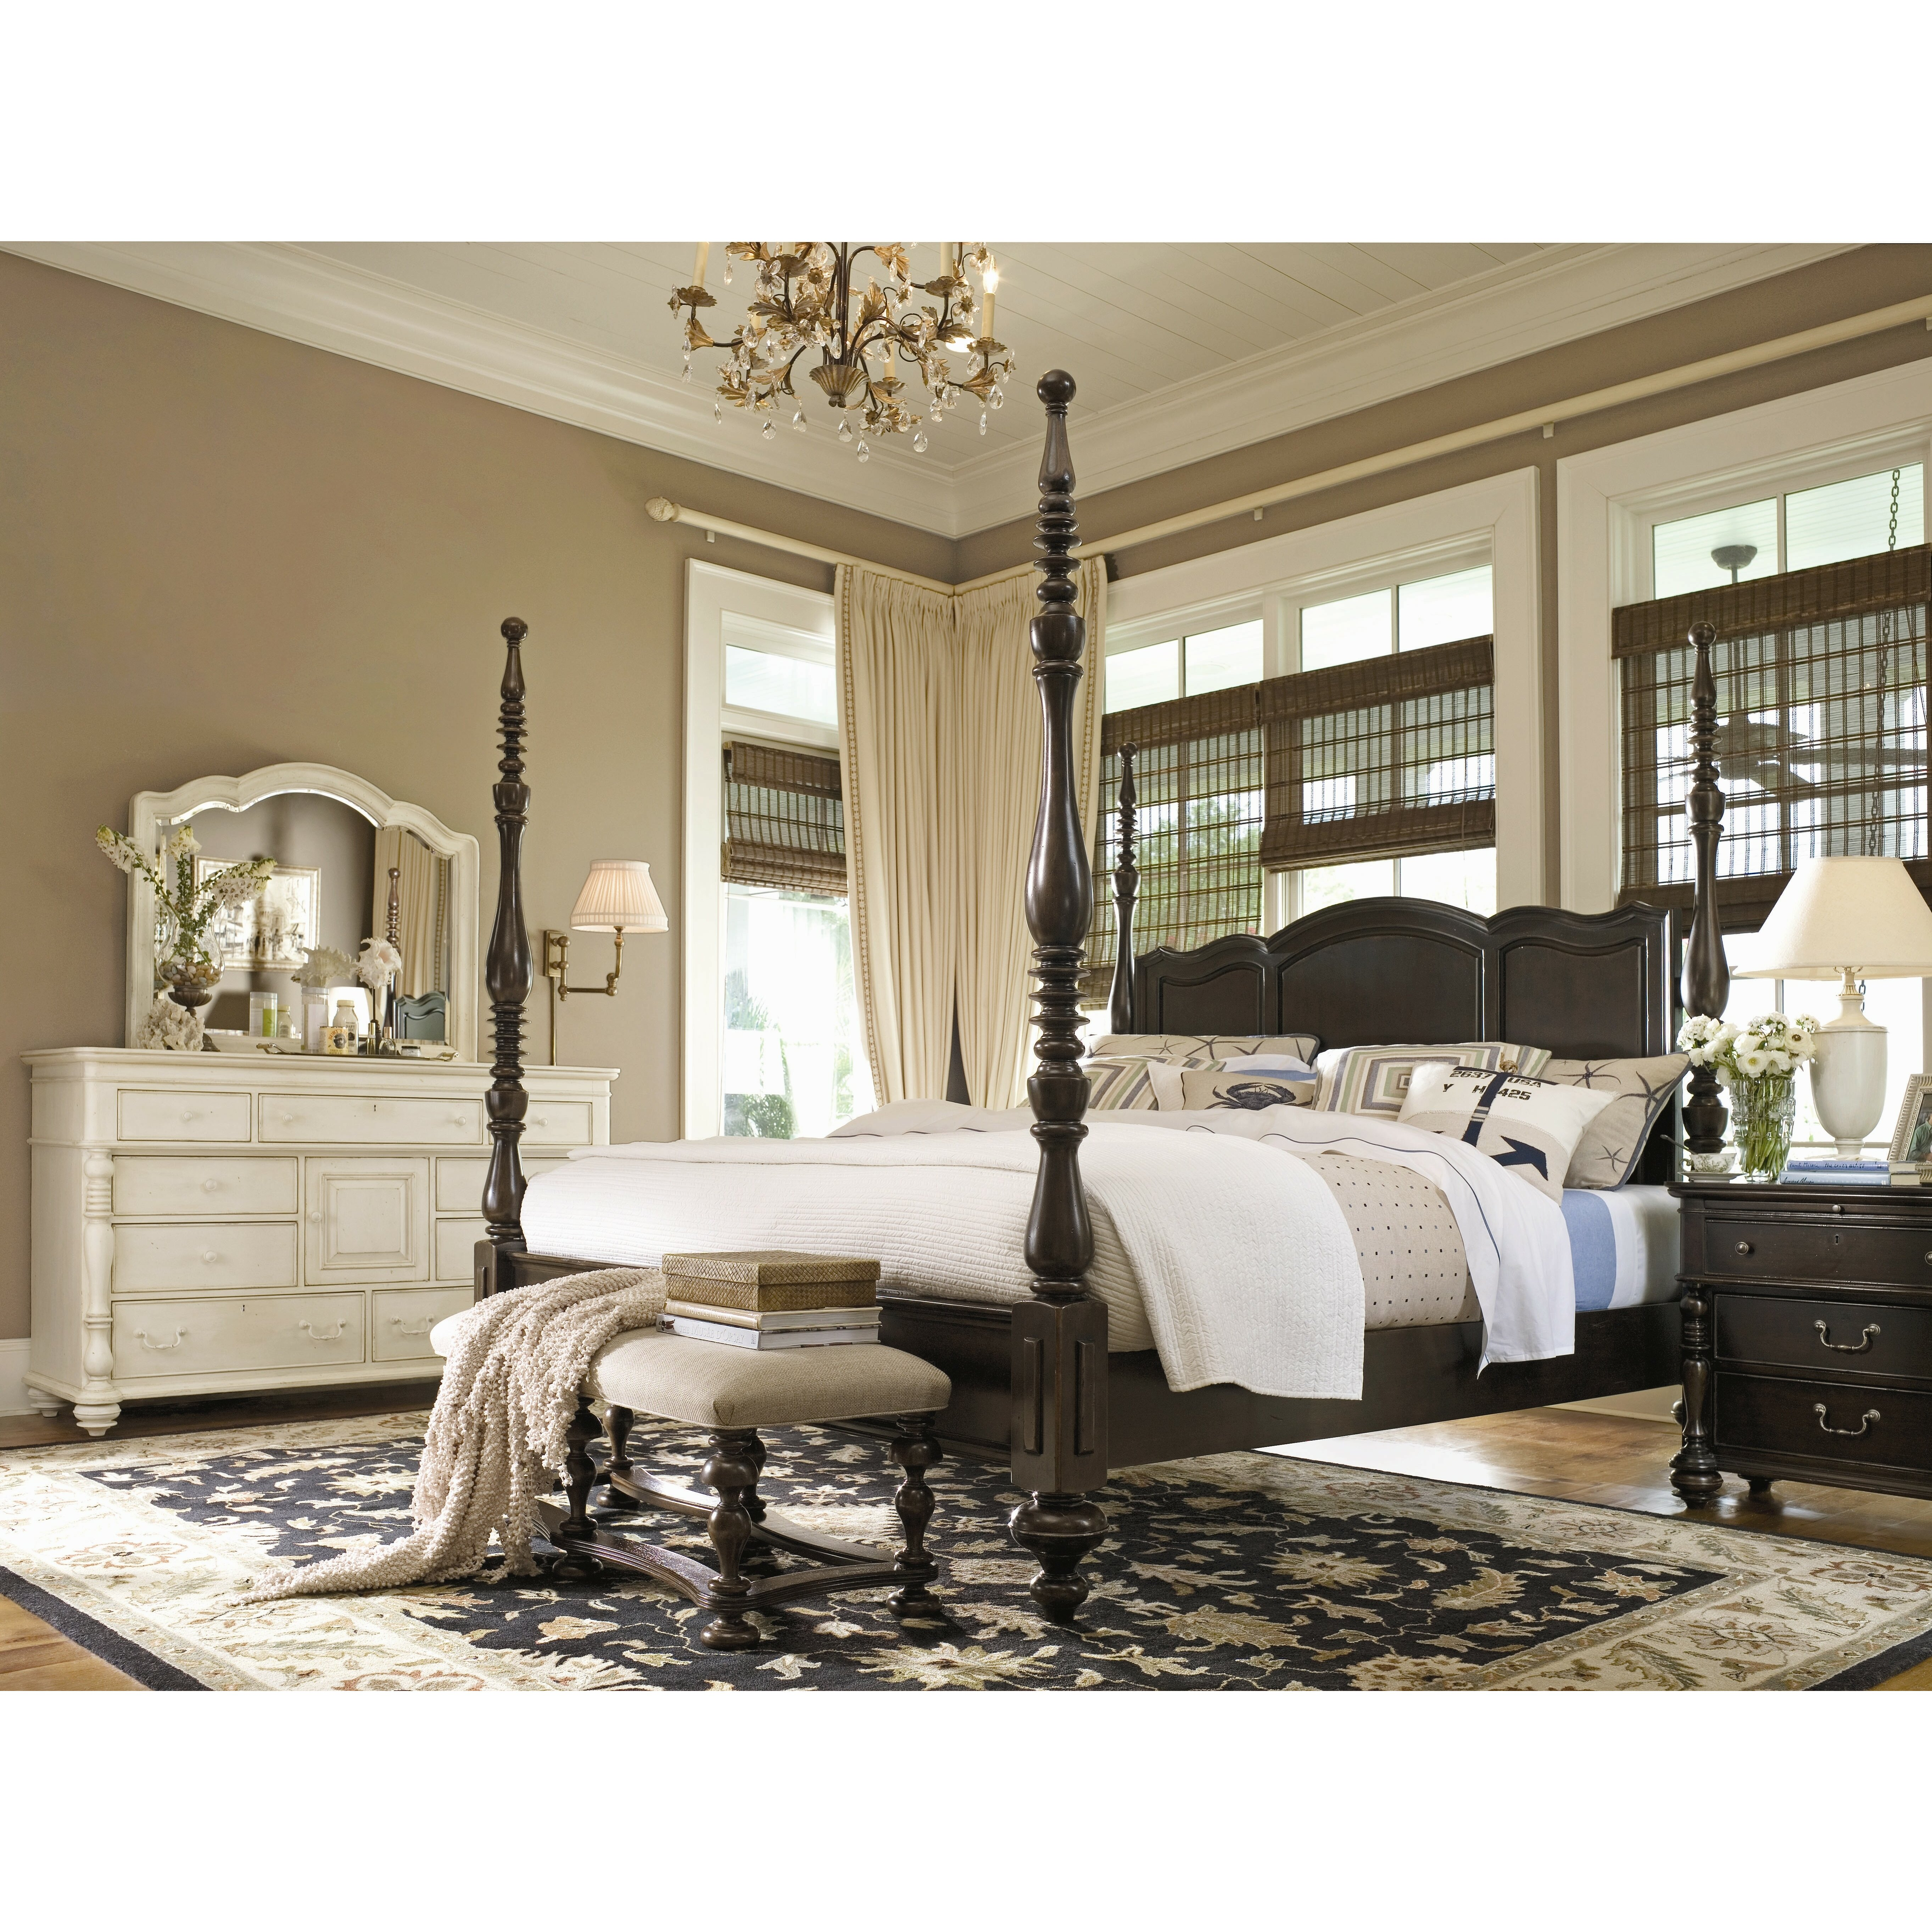 Paula Deen Bedroom Furniture Collection Steel Magnolia Paula Deen Home Steel Magnolia 9 Drawer Combo Dresser Reviews